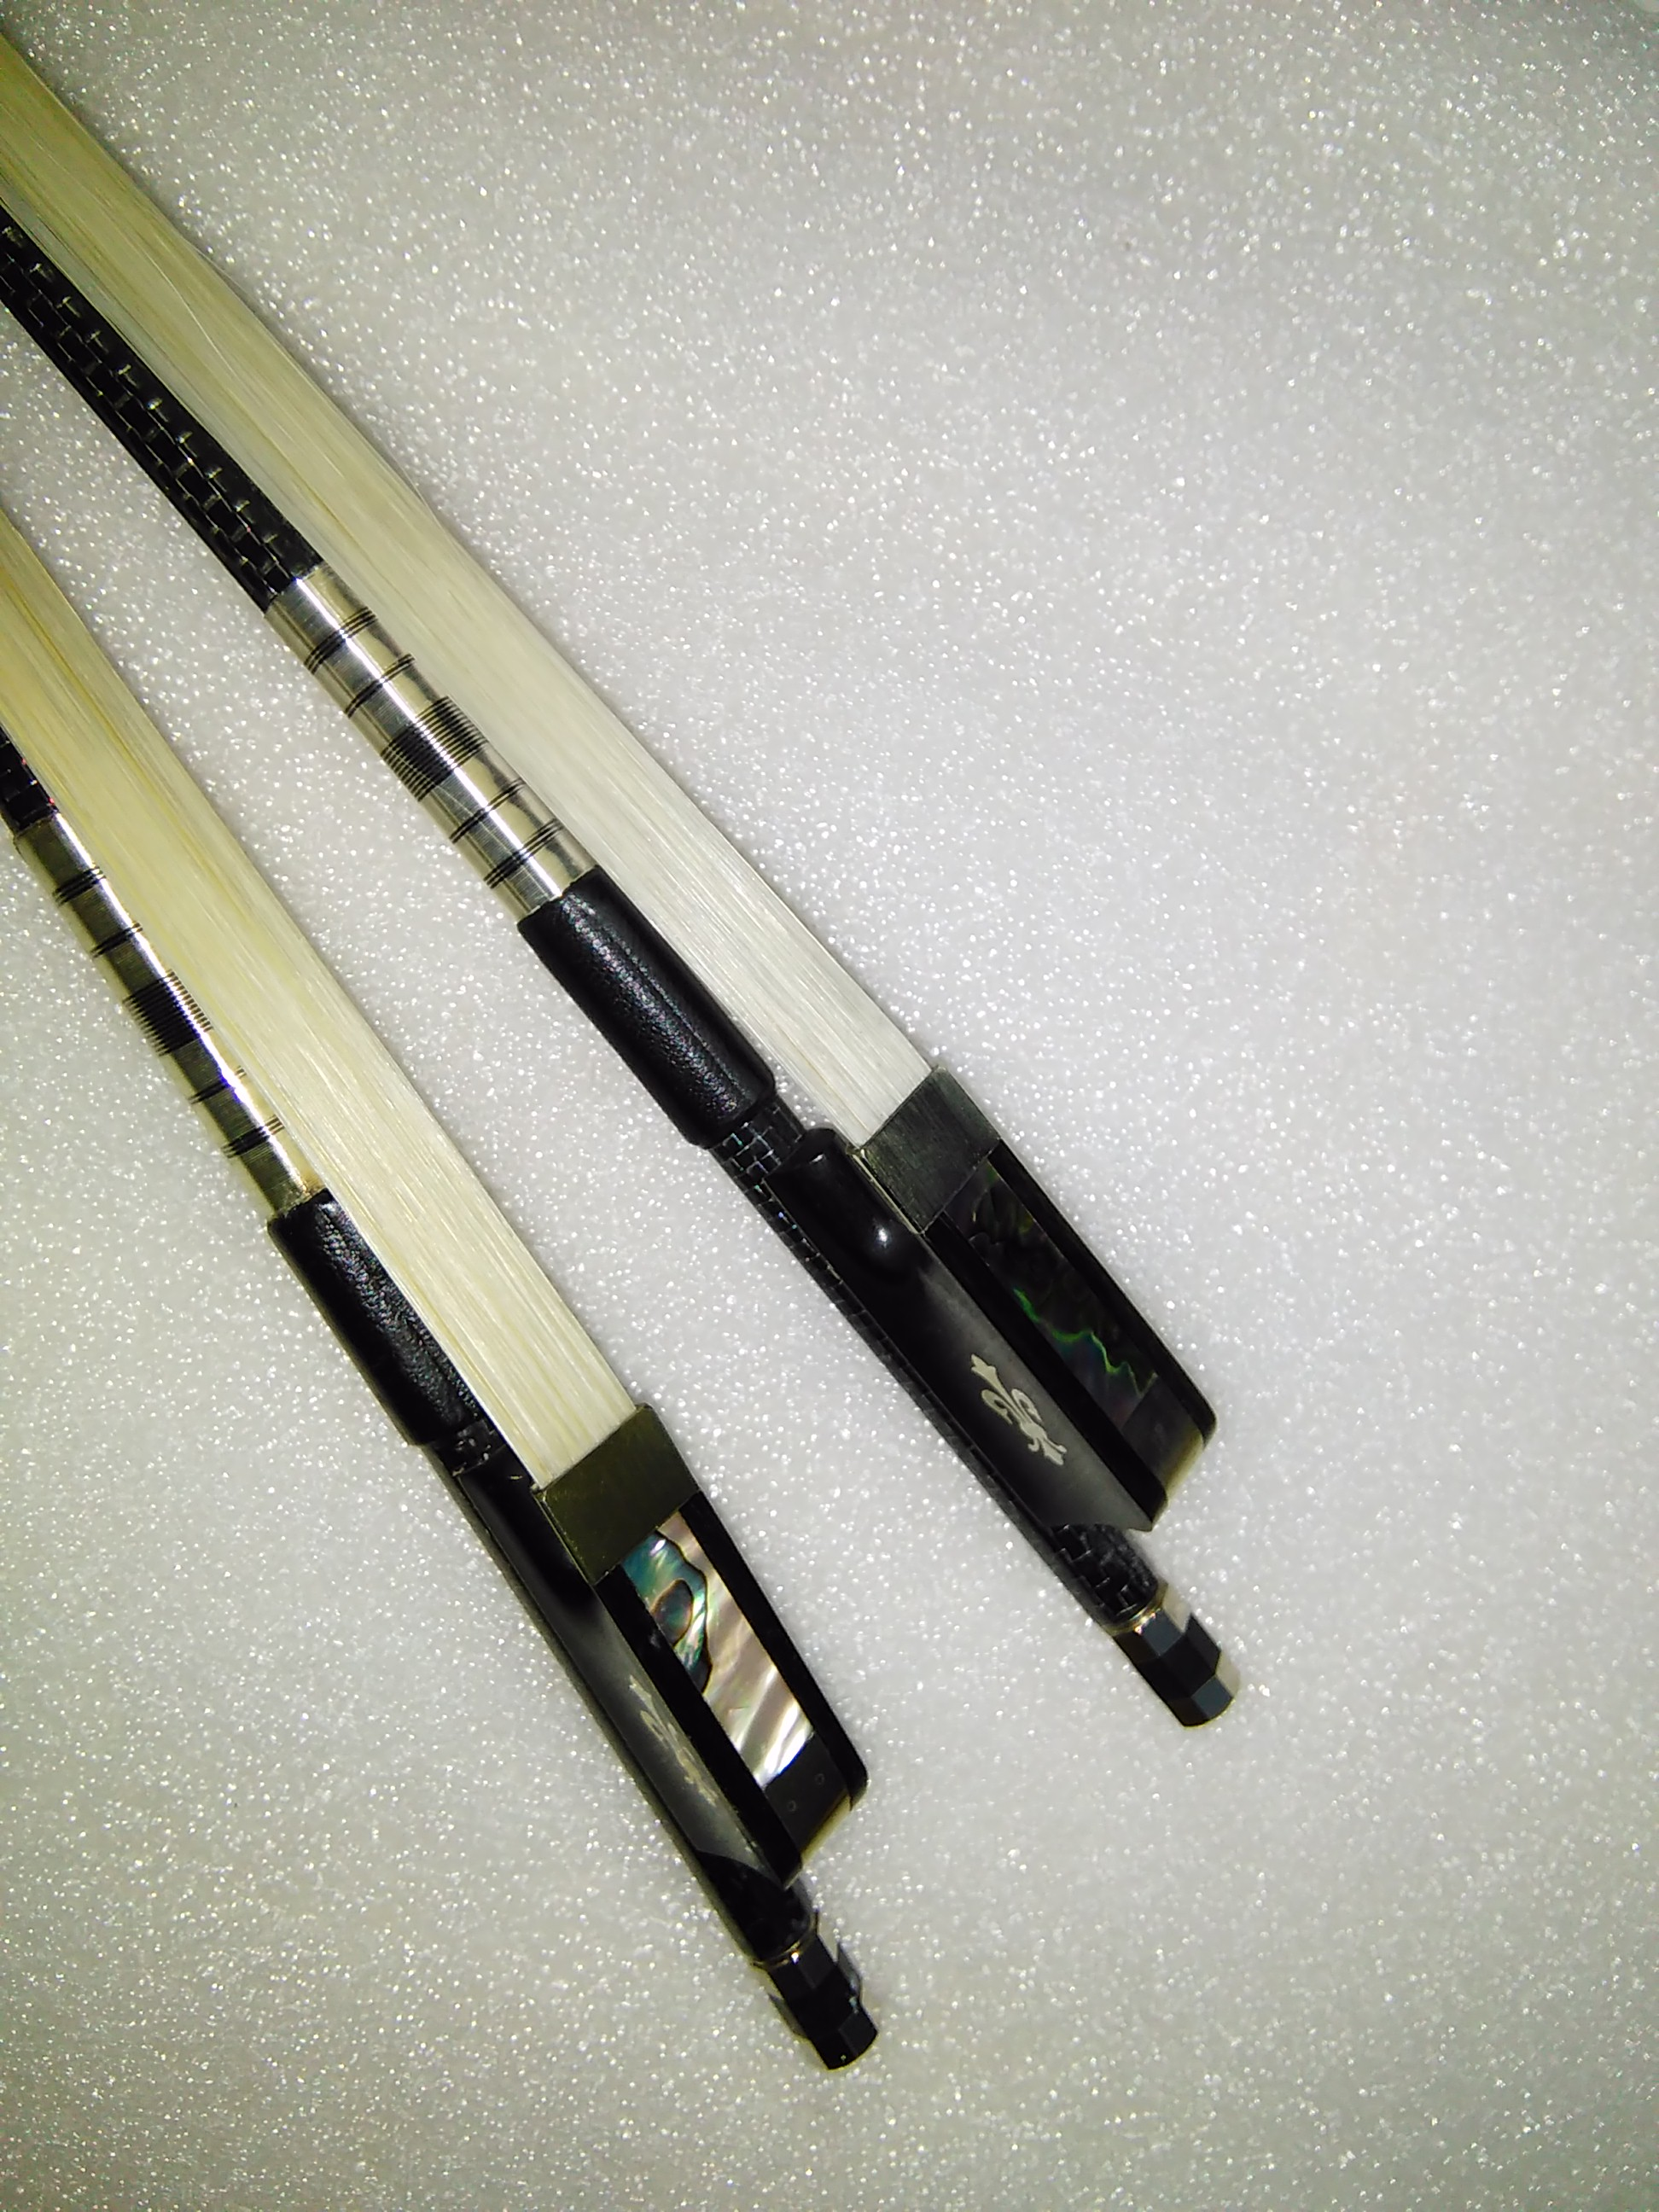 2 PCs Cello bow Carbon Fiber Cello bow with white bow hair ebony frog 4/4 one is silver wire inlay one is red wire inlay 2 pcs quality black carbon fiber violin bow black bow hair ebony frog with carved flower 4 4